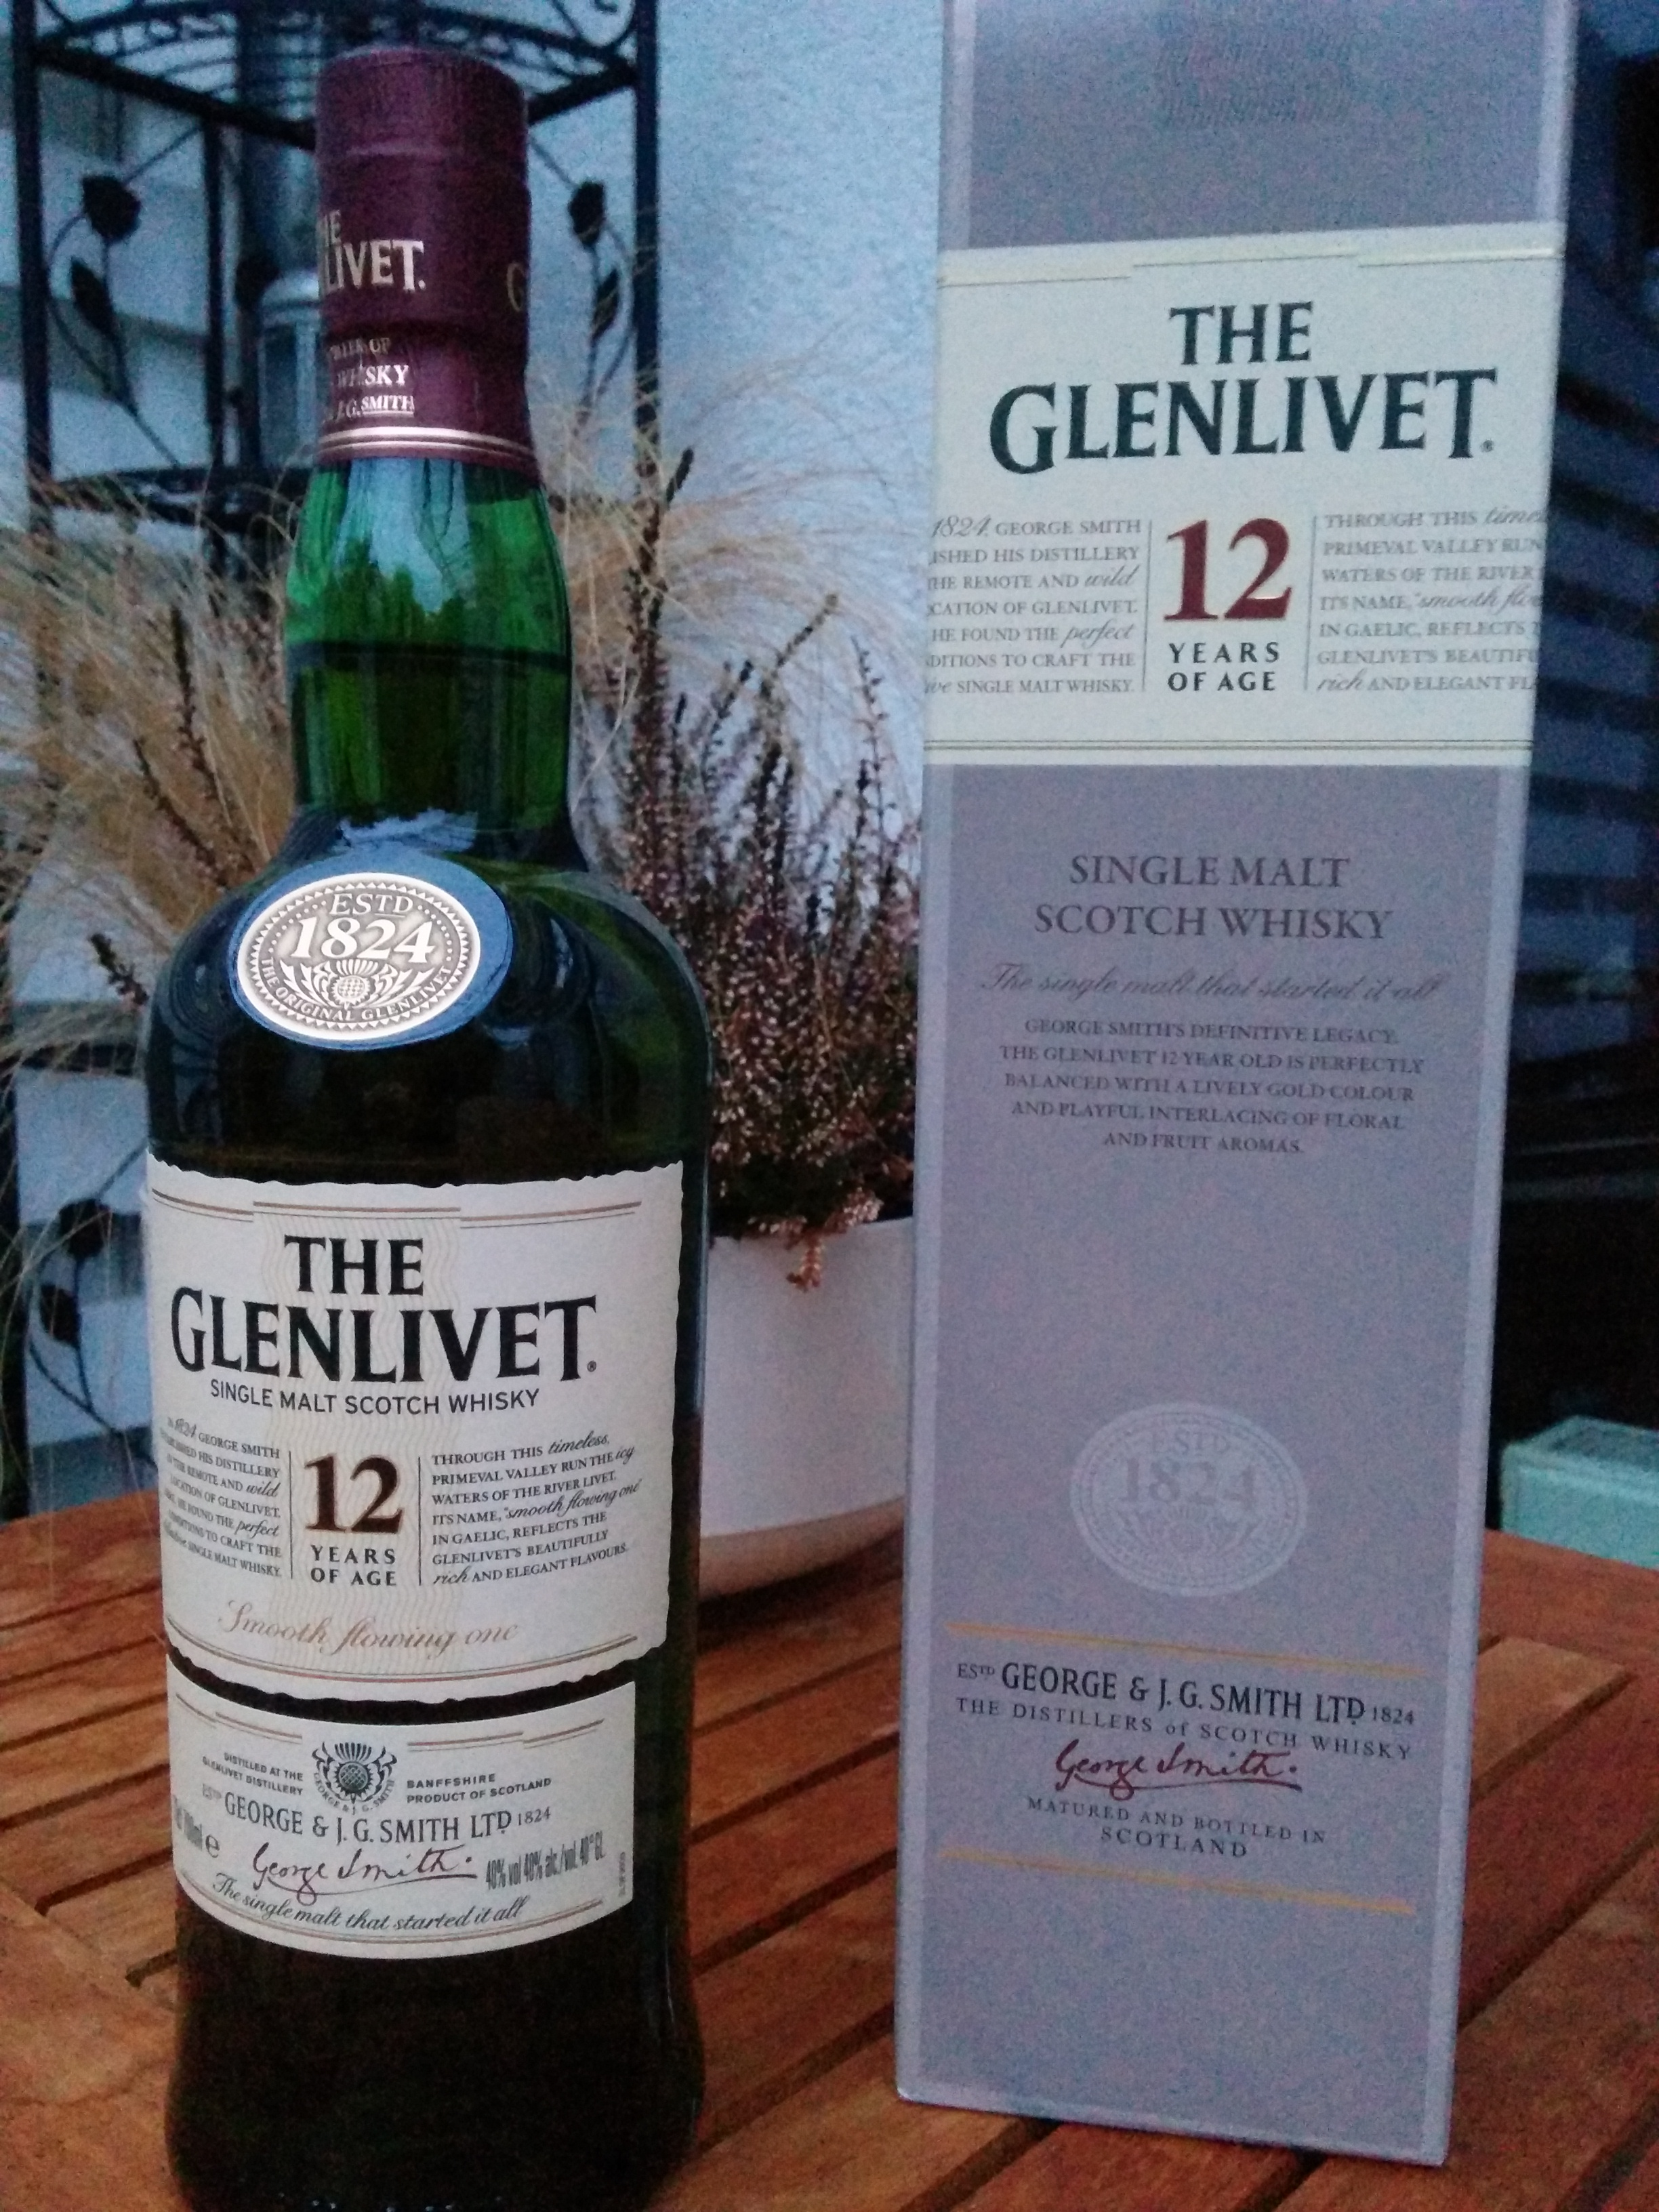 Glenlivet 12yo Single Malt Scotch Whisky